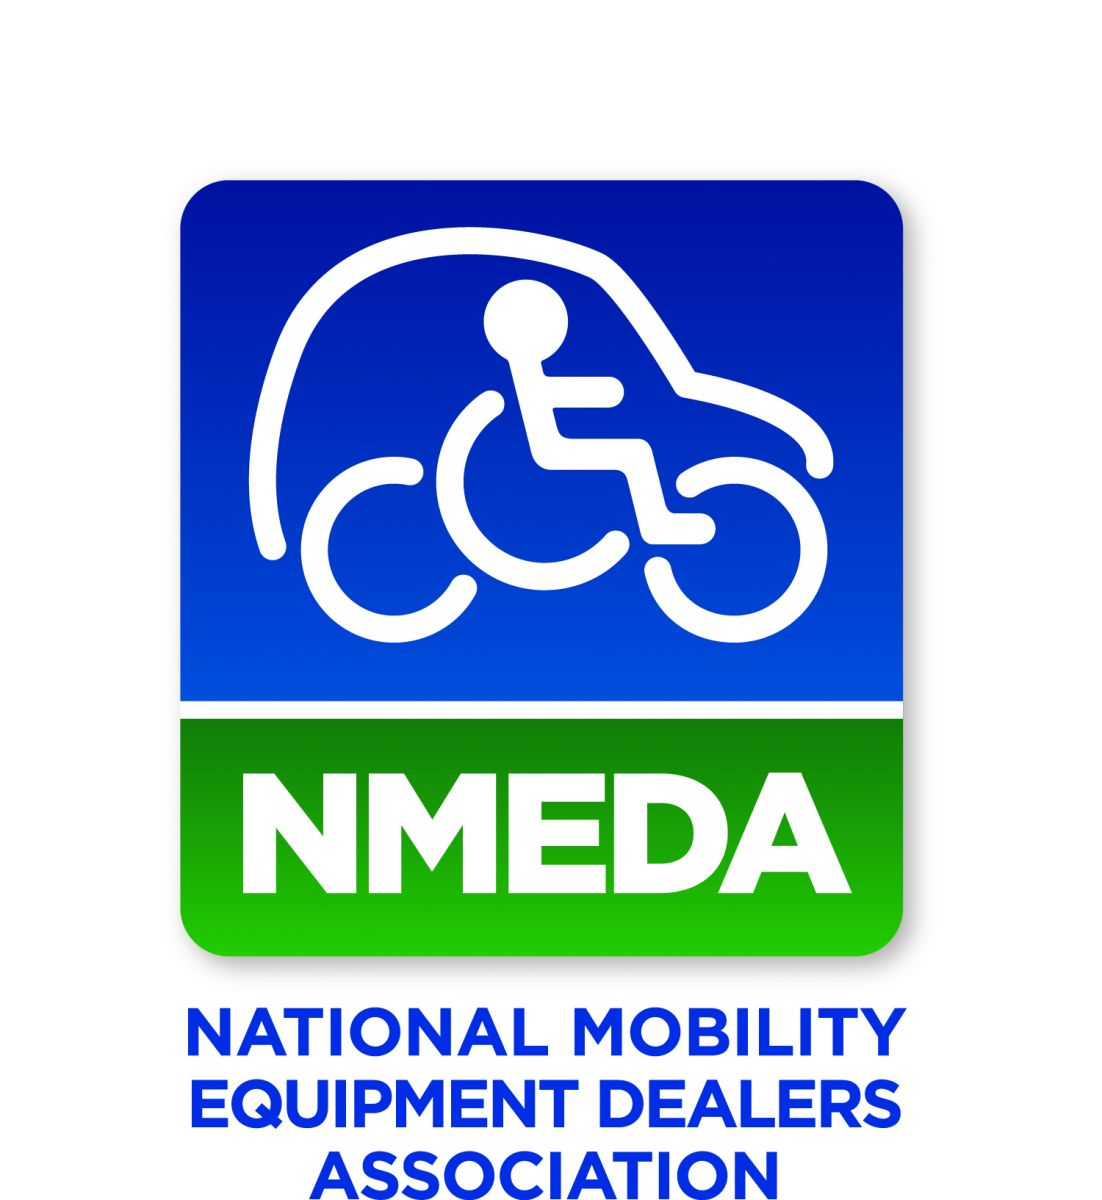 National Mobility Equipment Dealers Association (NMEDA) Logo